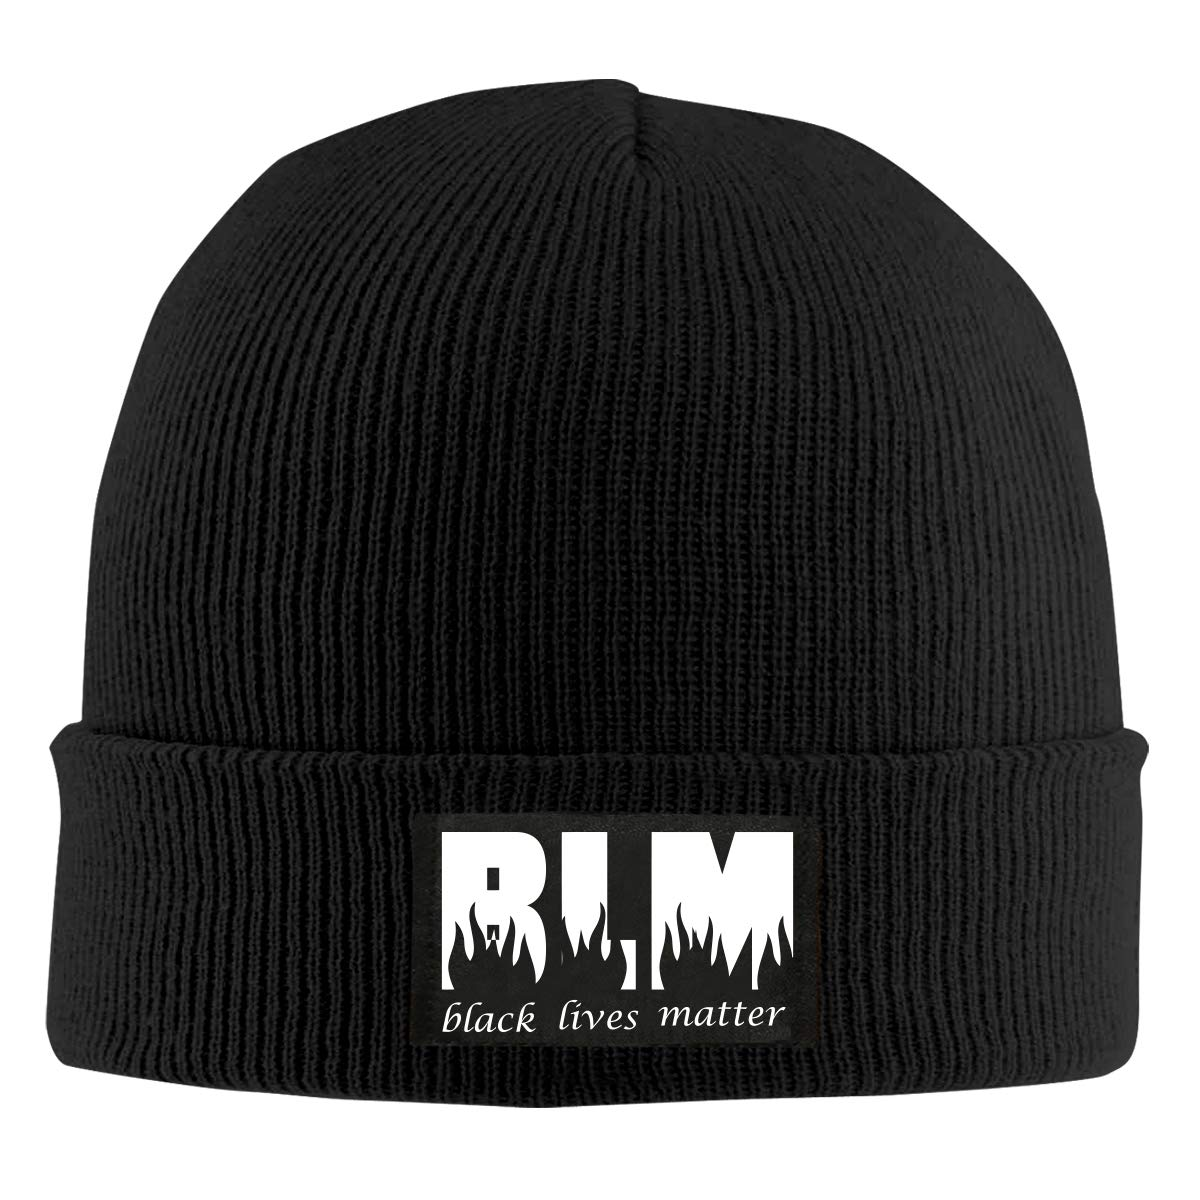 BLM Black Lives Matter 20 Men /& Womens Knitted Hat Comfortable Pure Color Hat